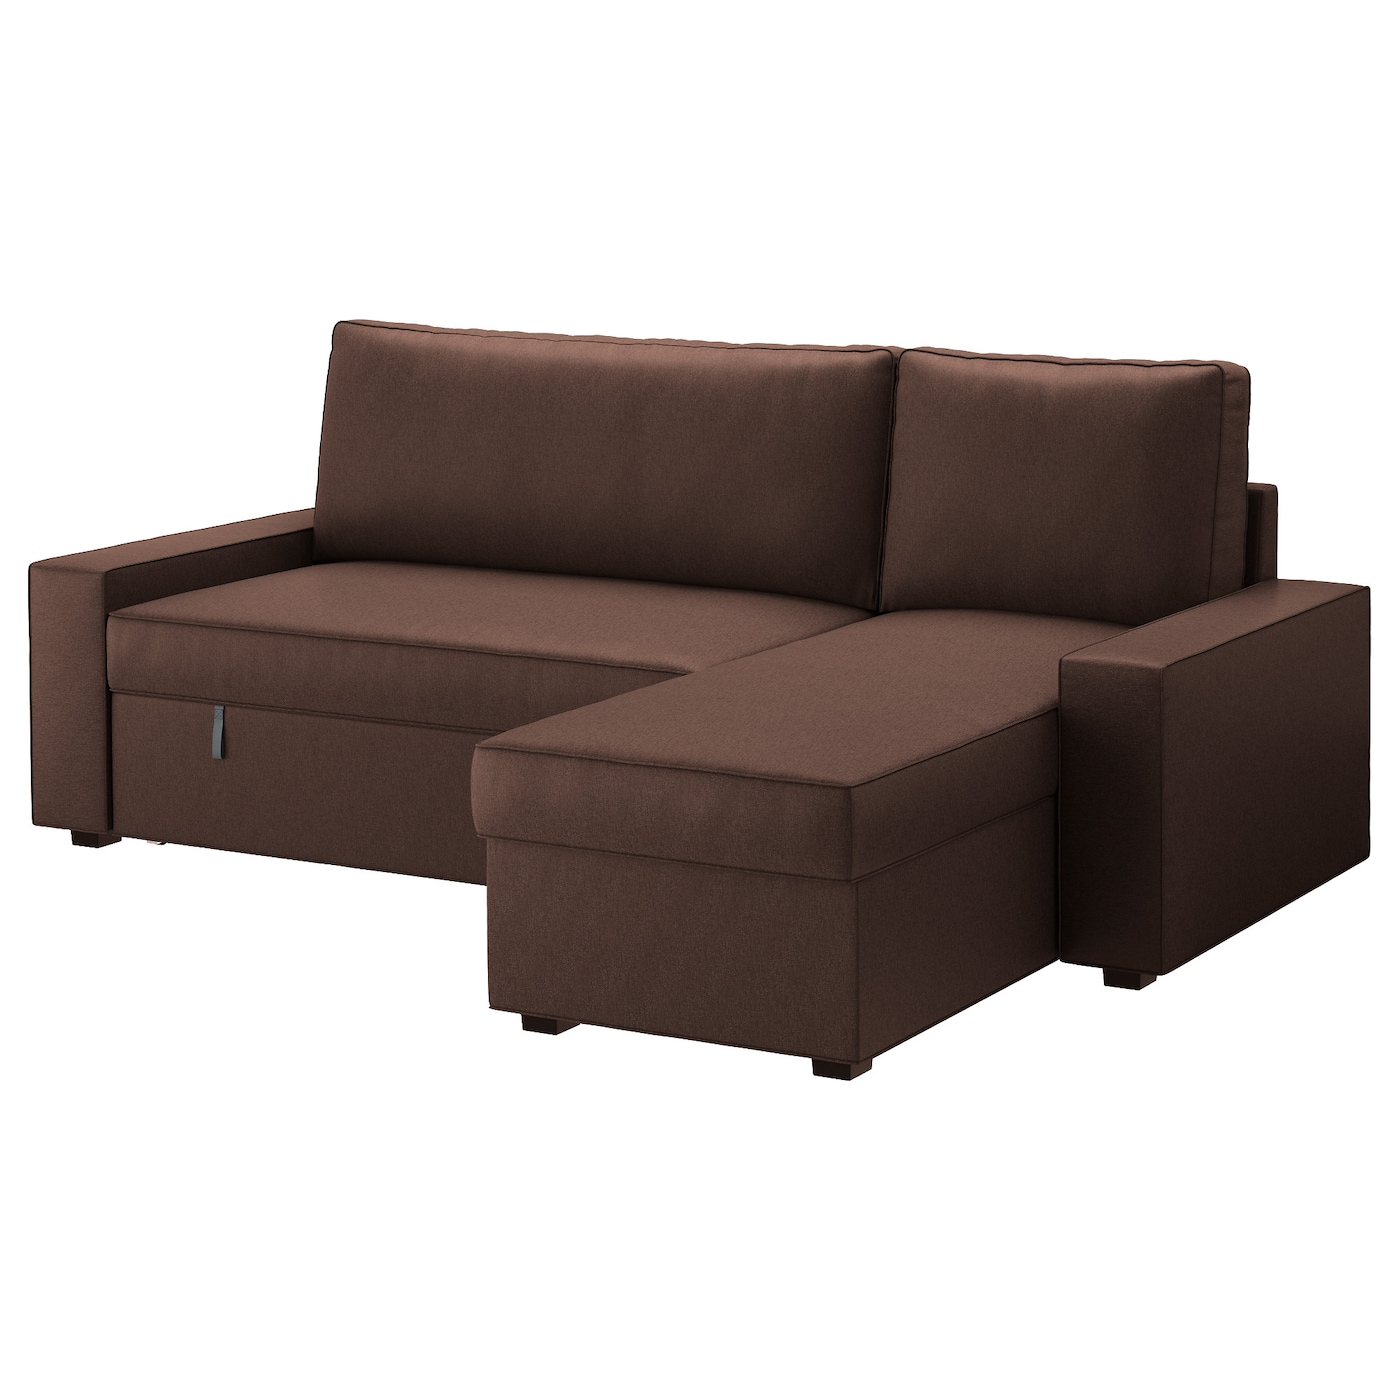 Vilasund sofa bed with chaise longue borred dark brown ikea for Chaise longue jardin ikea